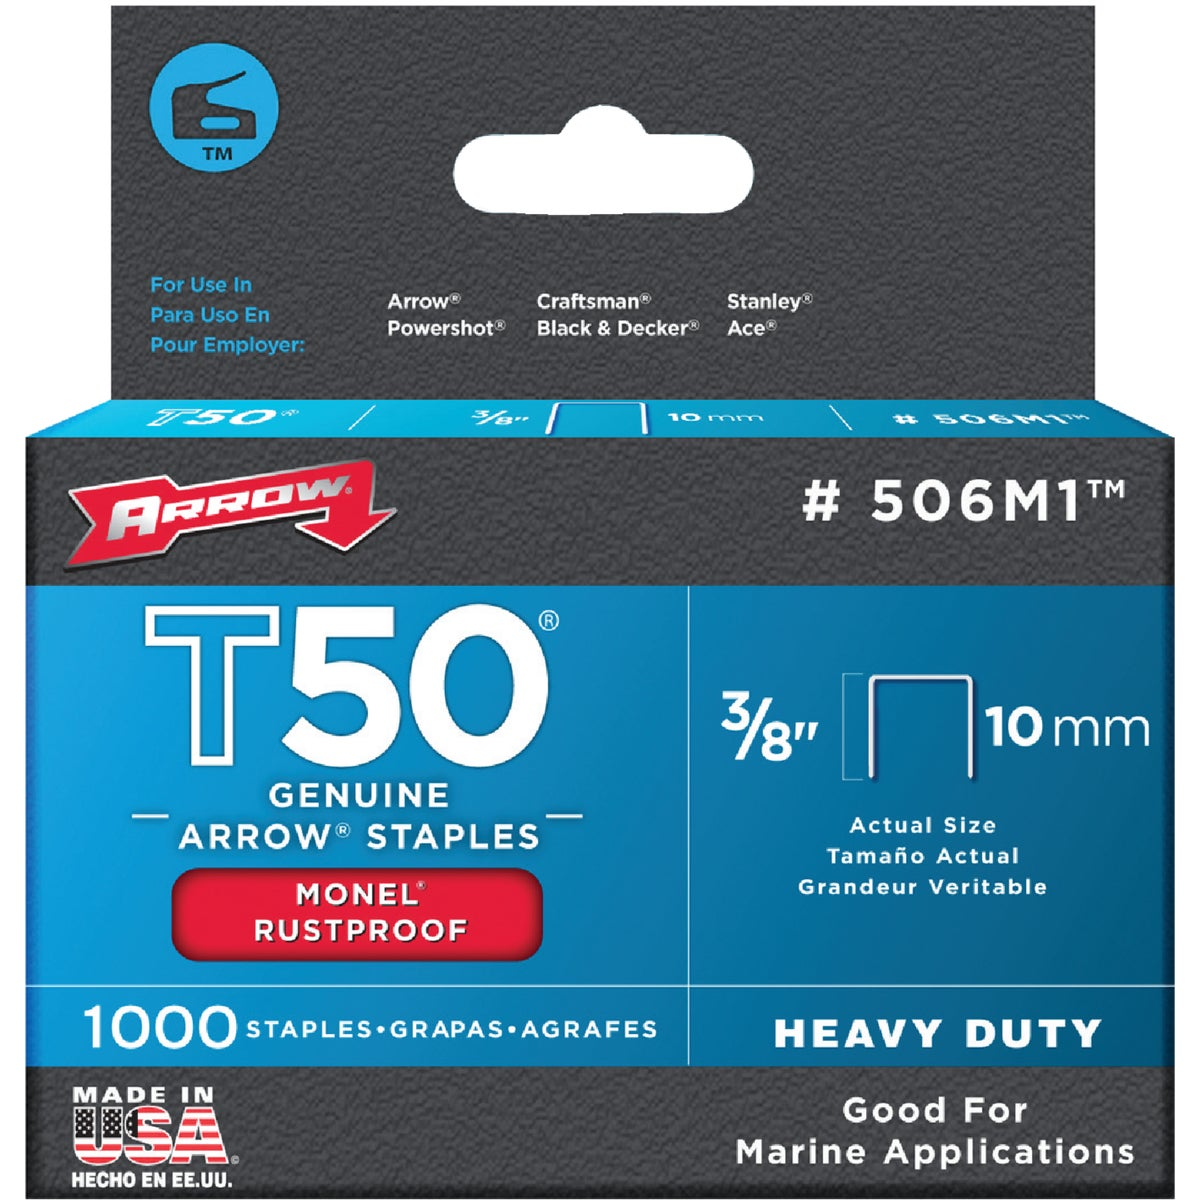 "3/8"" MONEL STAPLE - 506M1 by Arrow Fastener Co"